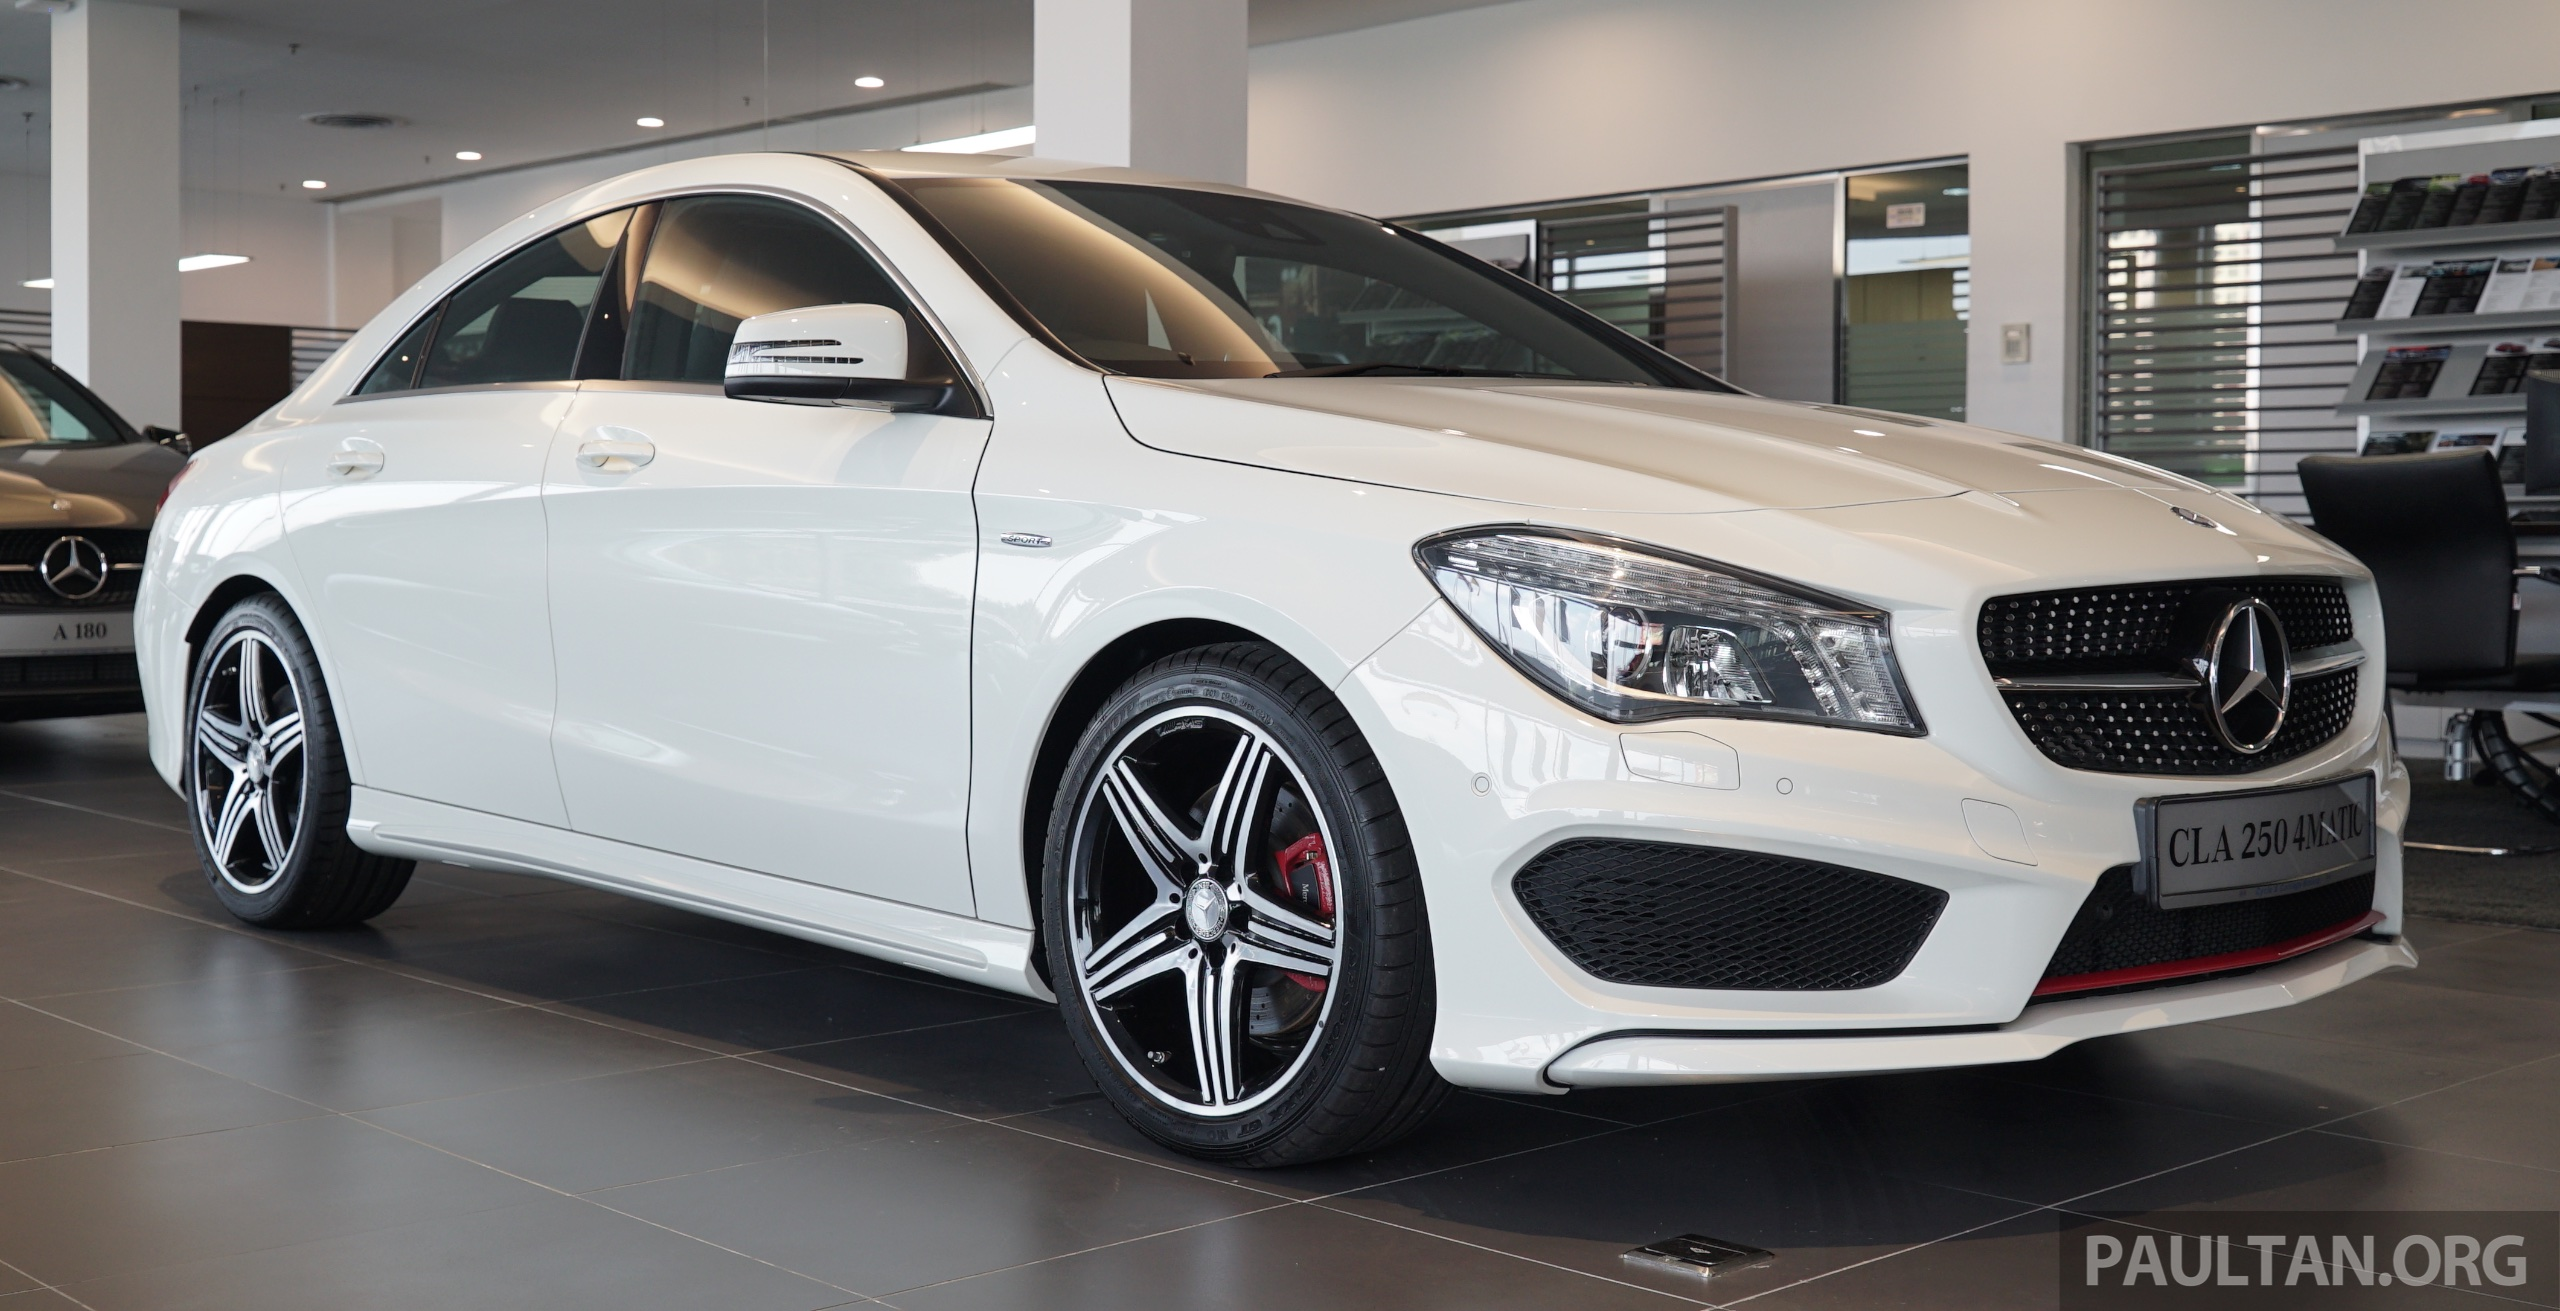 Mercedes benz cla250 sport 4matic in m sia rm269k image for 2014 mercedes benz cla250 4matic